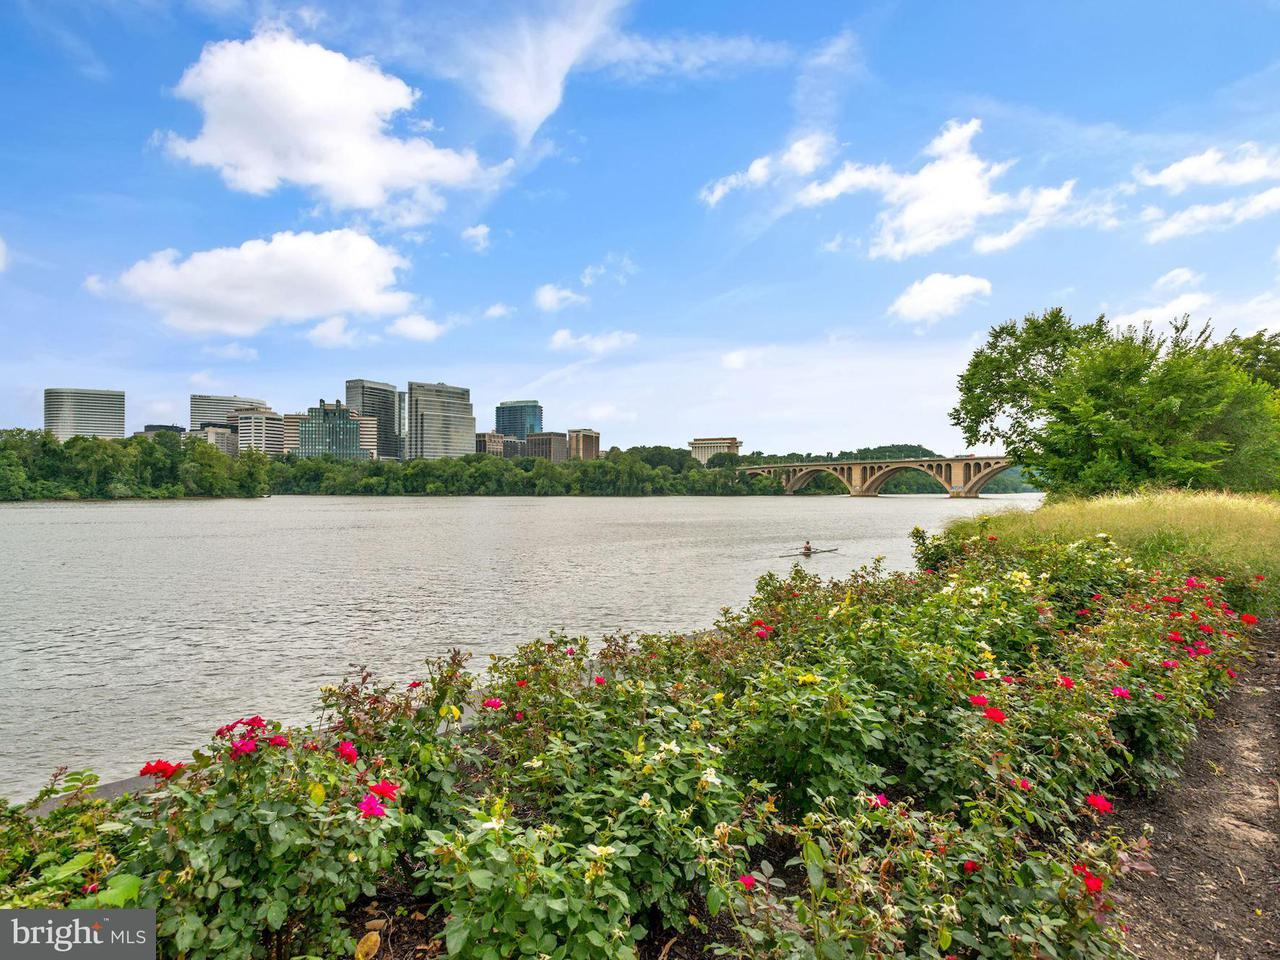 Additional photo for property listing at 3303 Water St Nw #5b 3303 Water St Nw #5b Washington, コロンビア特別区 20007 アメリカ合衆国